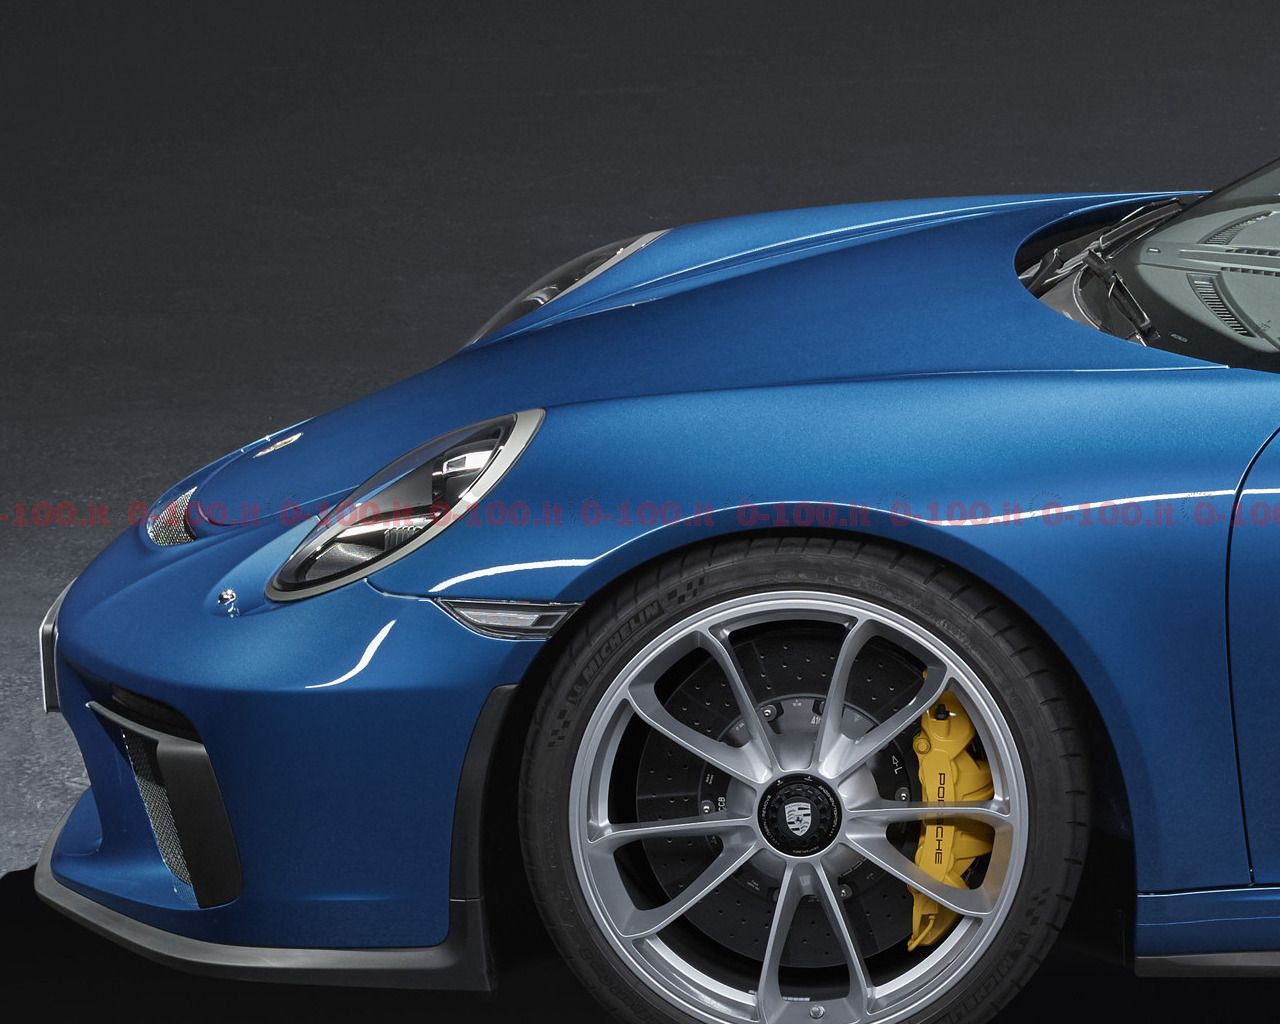 porsche-911-991-gt3-touring-package-manual-gearbox_0-100_A7